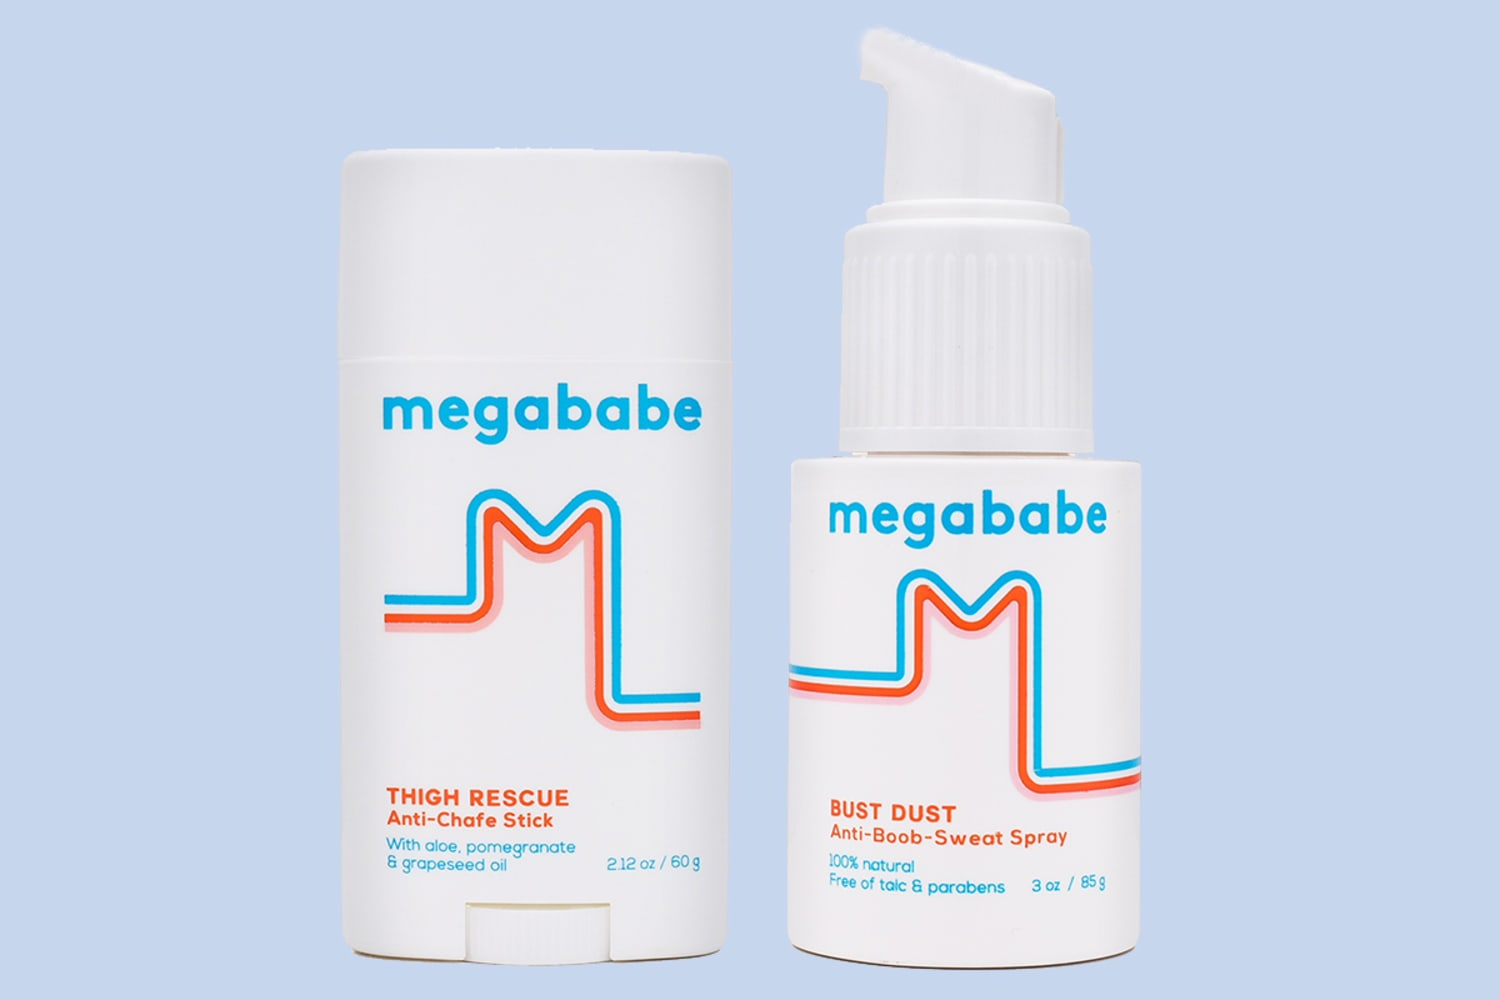 JWT Megababe products